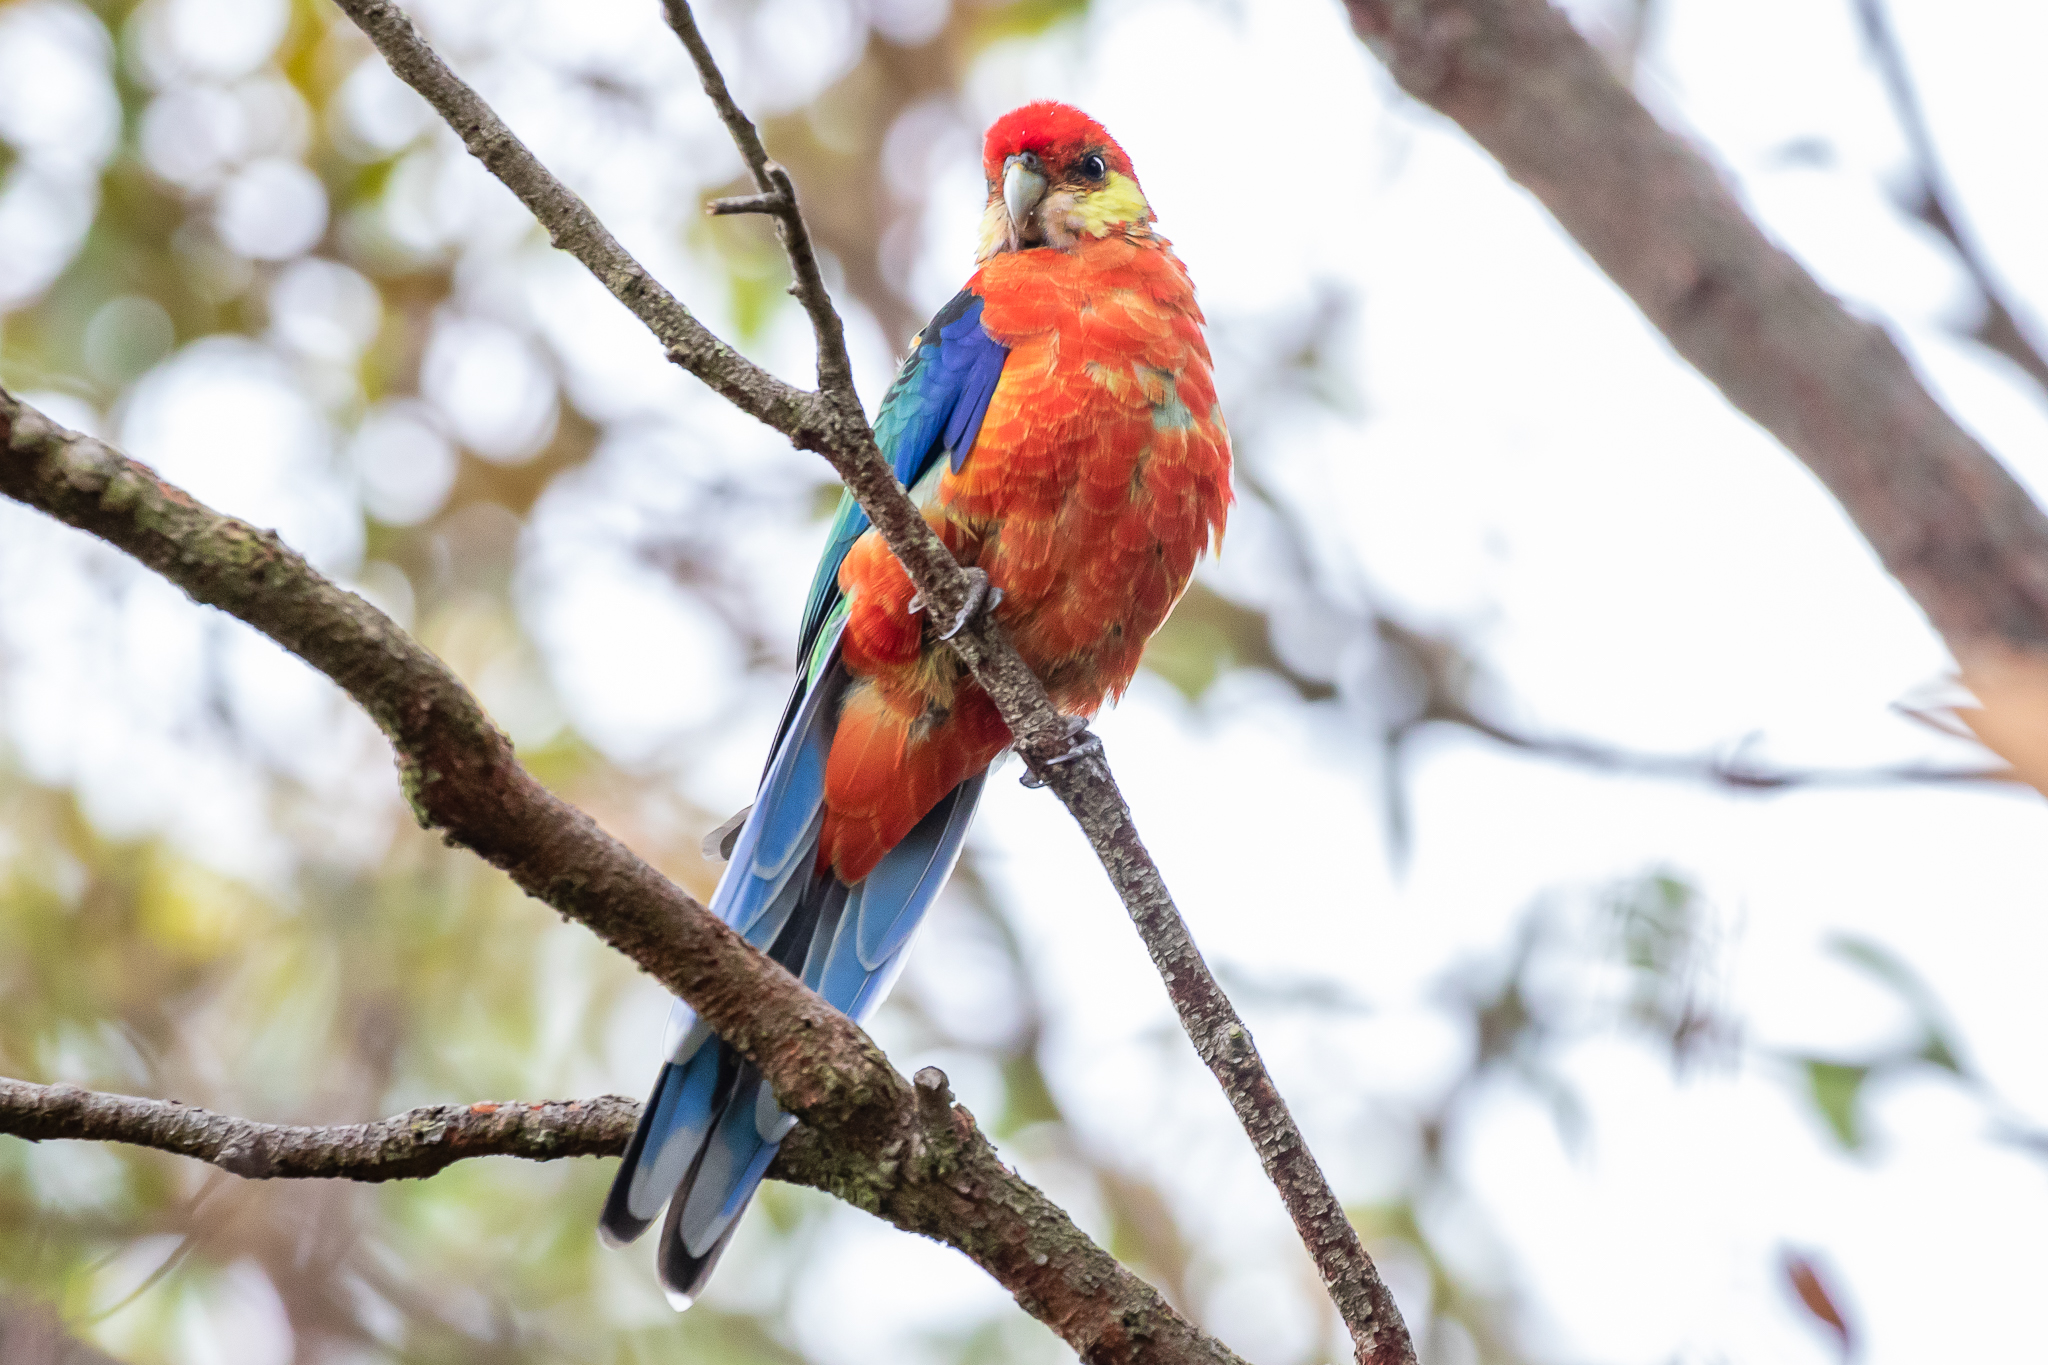 The Western Rosella provides a beautiful variation of the Rosella's colouration. This bird sports the coloration of the far-south-west region, with a blue-green back. The back colour grades into red towards the north-west.